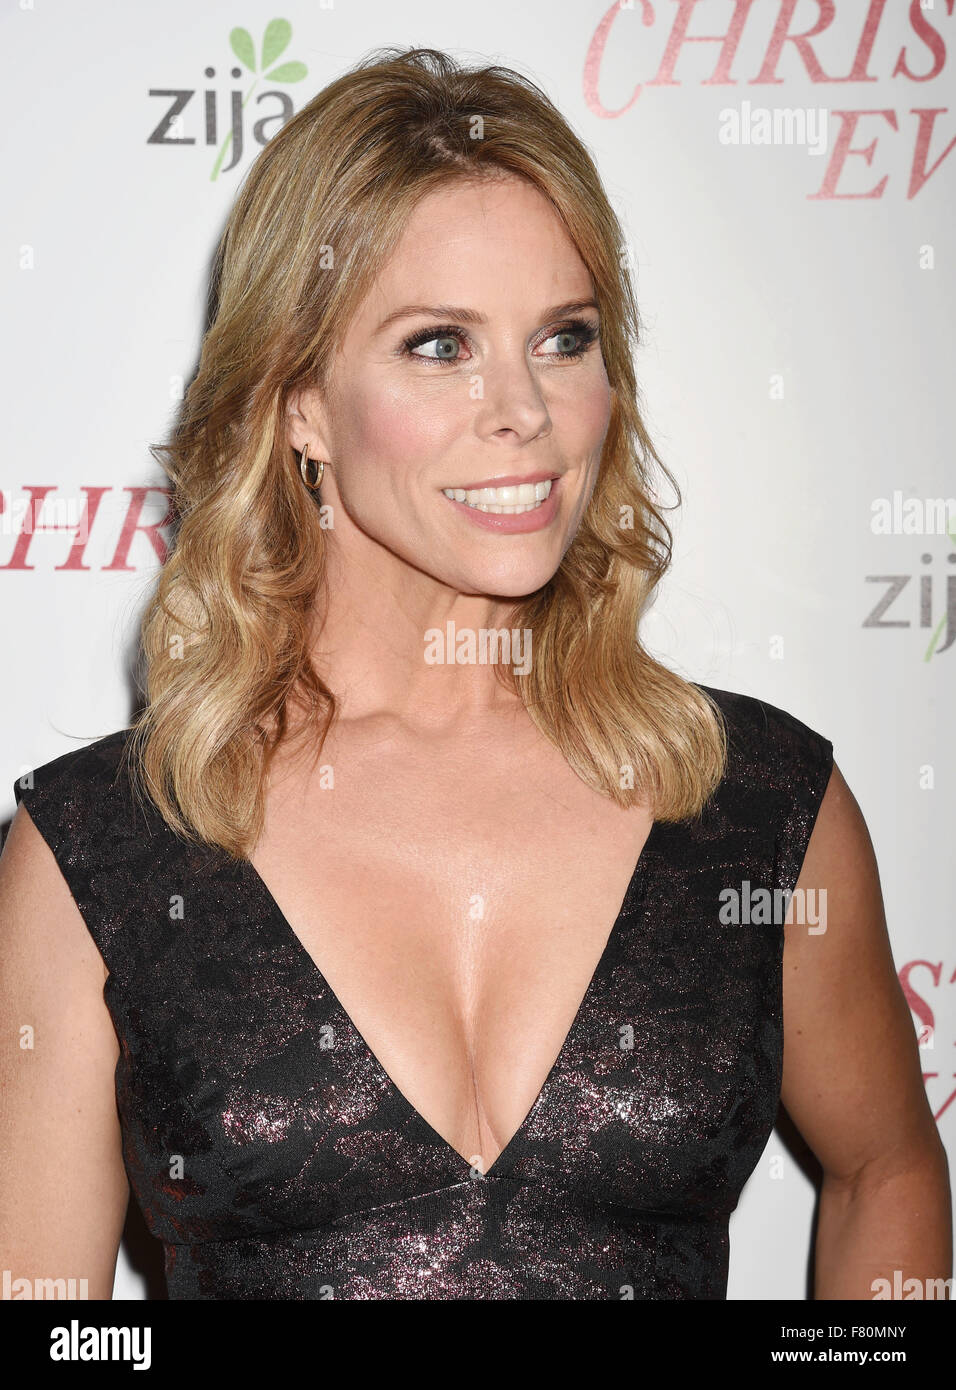 Pictures Cheryl Hines nude photos 2019